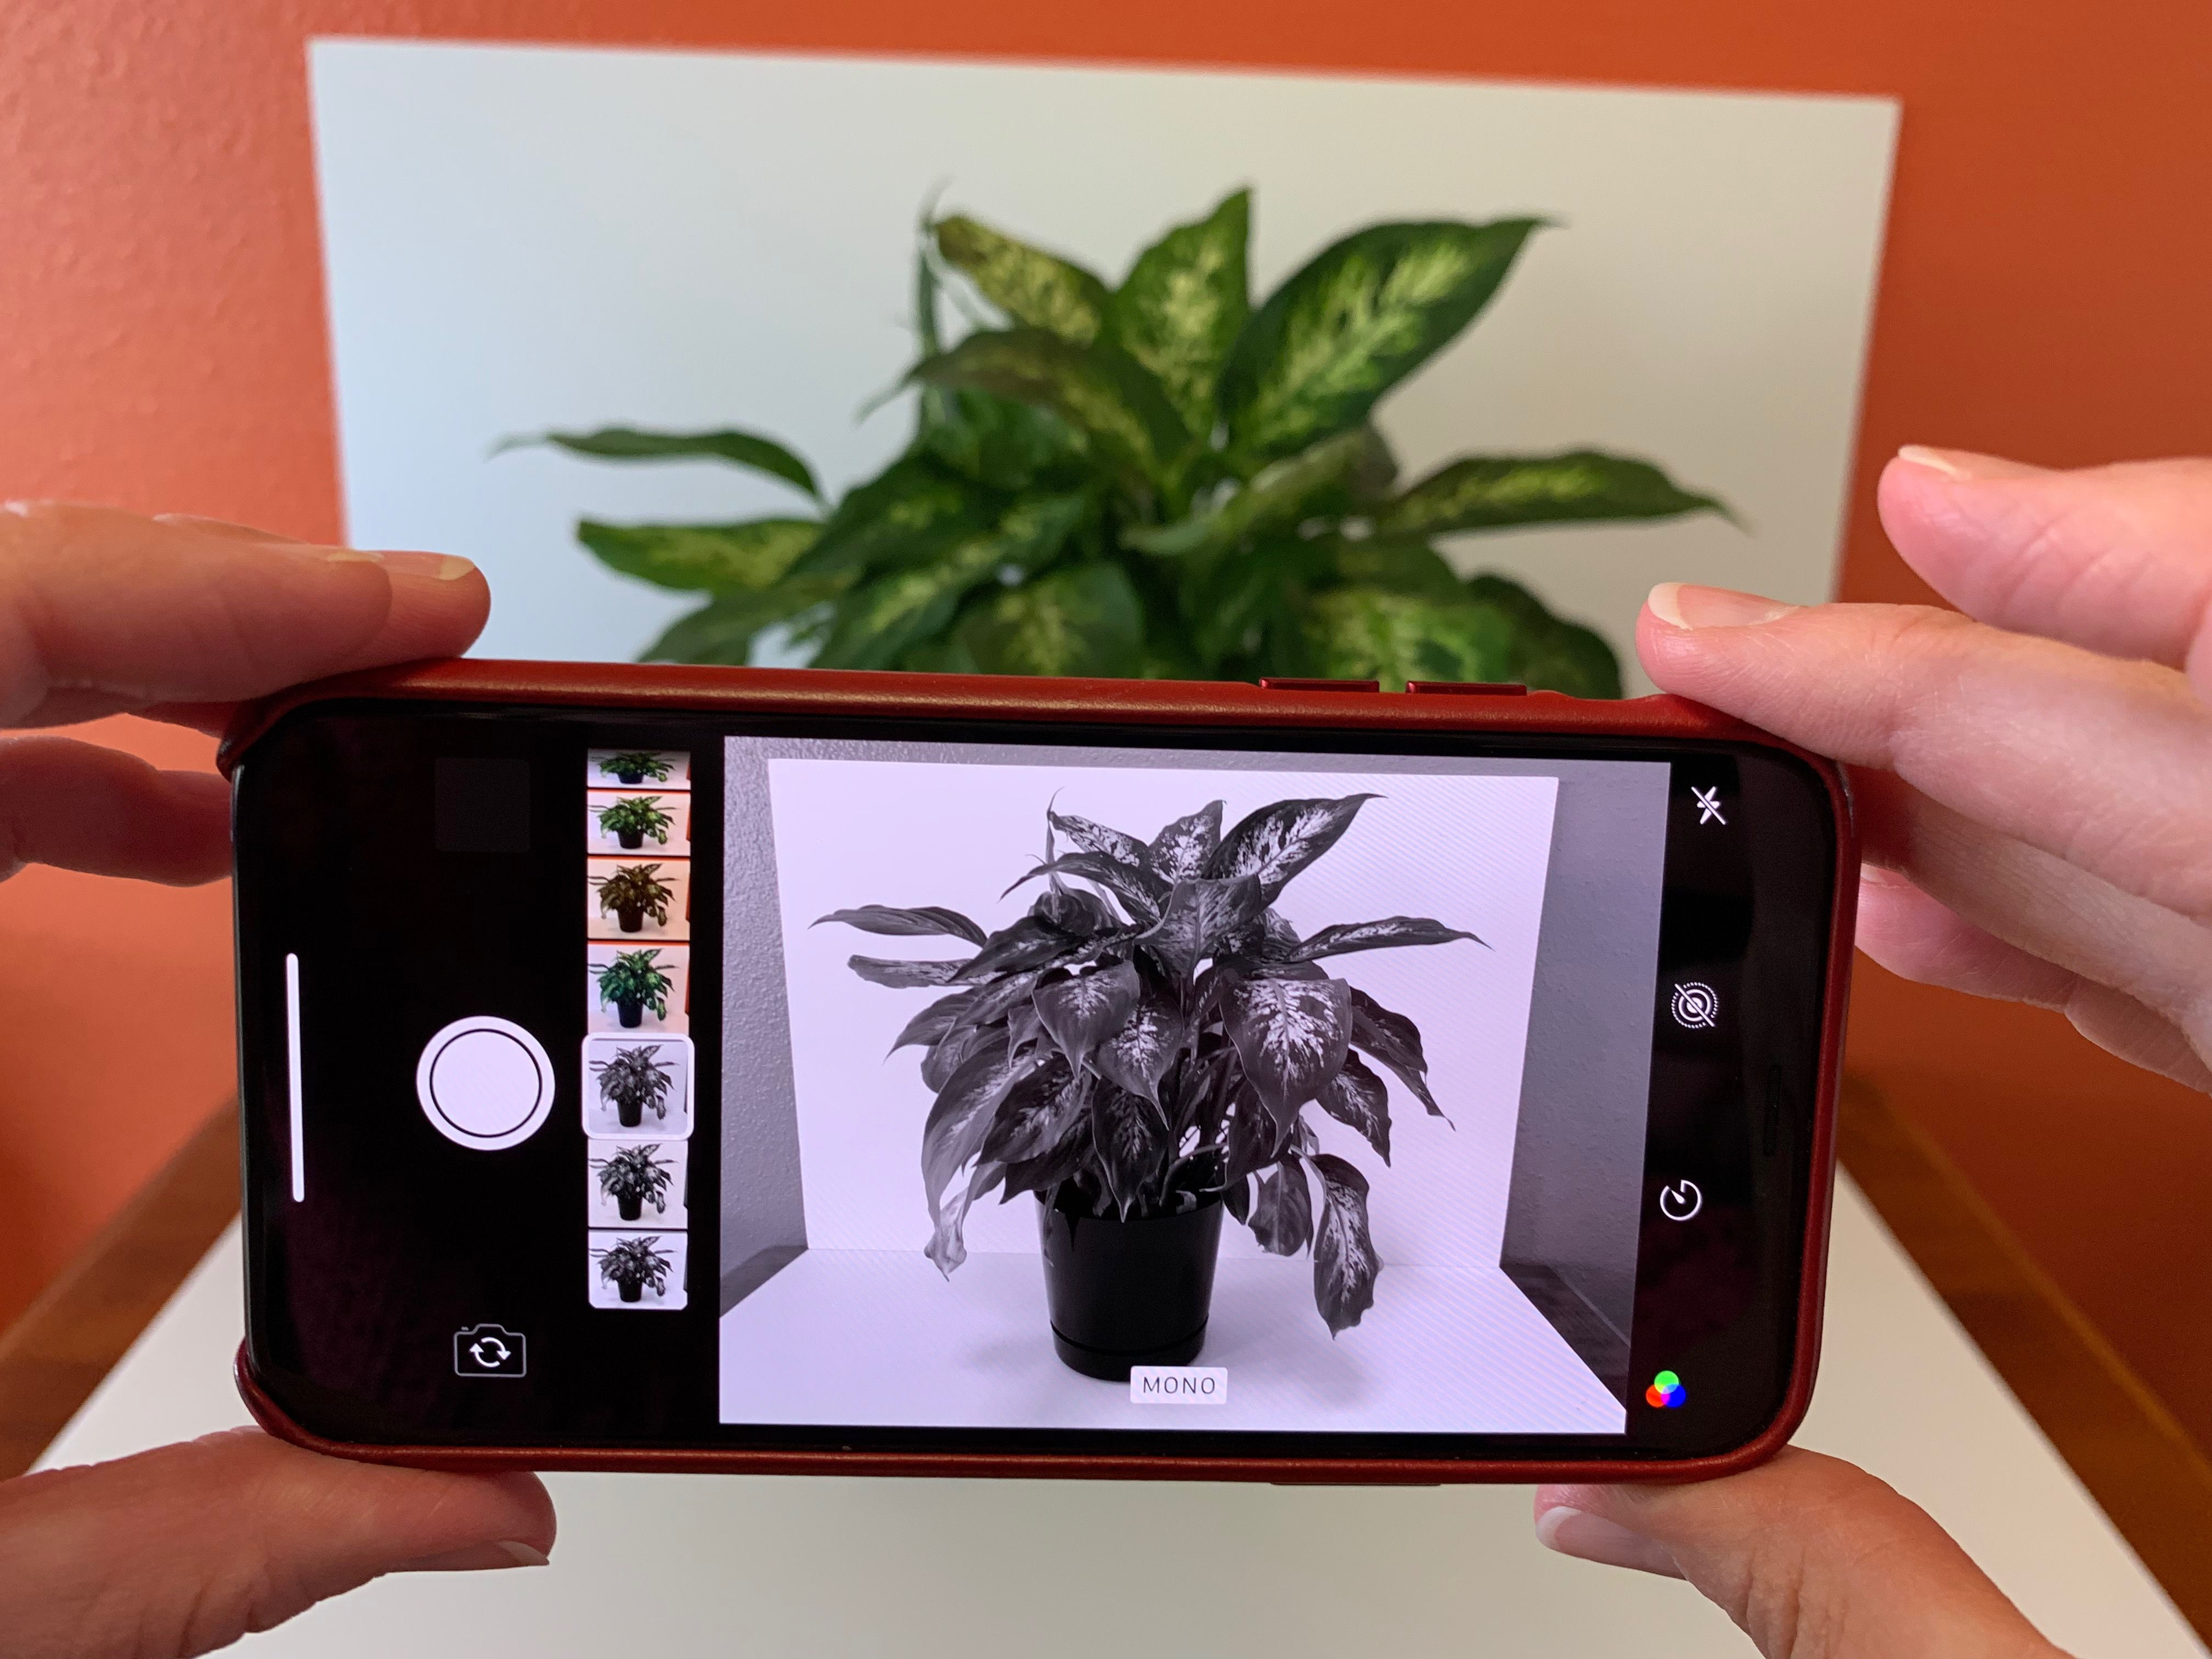 Photo of iPhone with MONO filter active, shows subject of a plant in varies shades from white to black